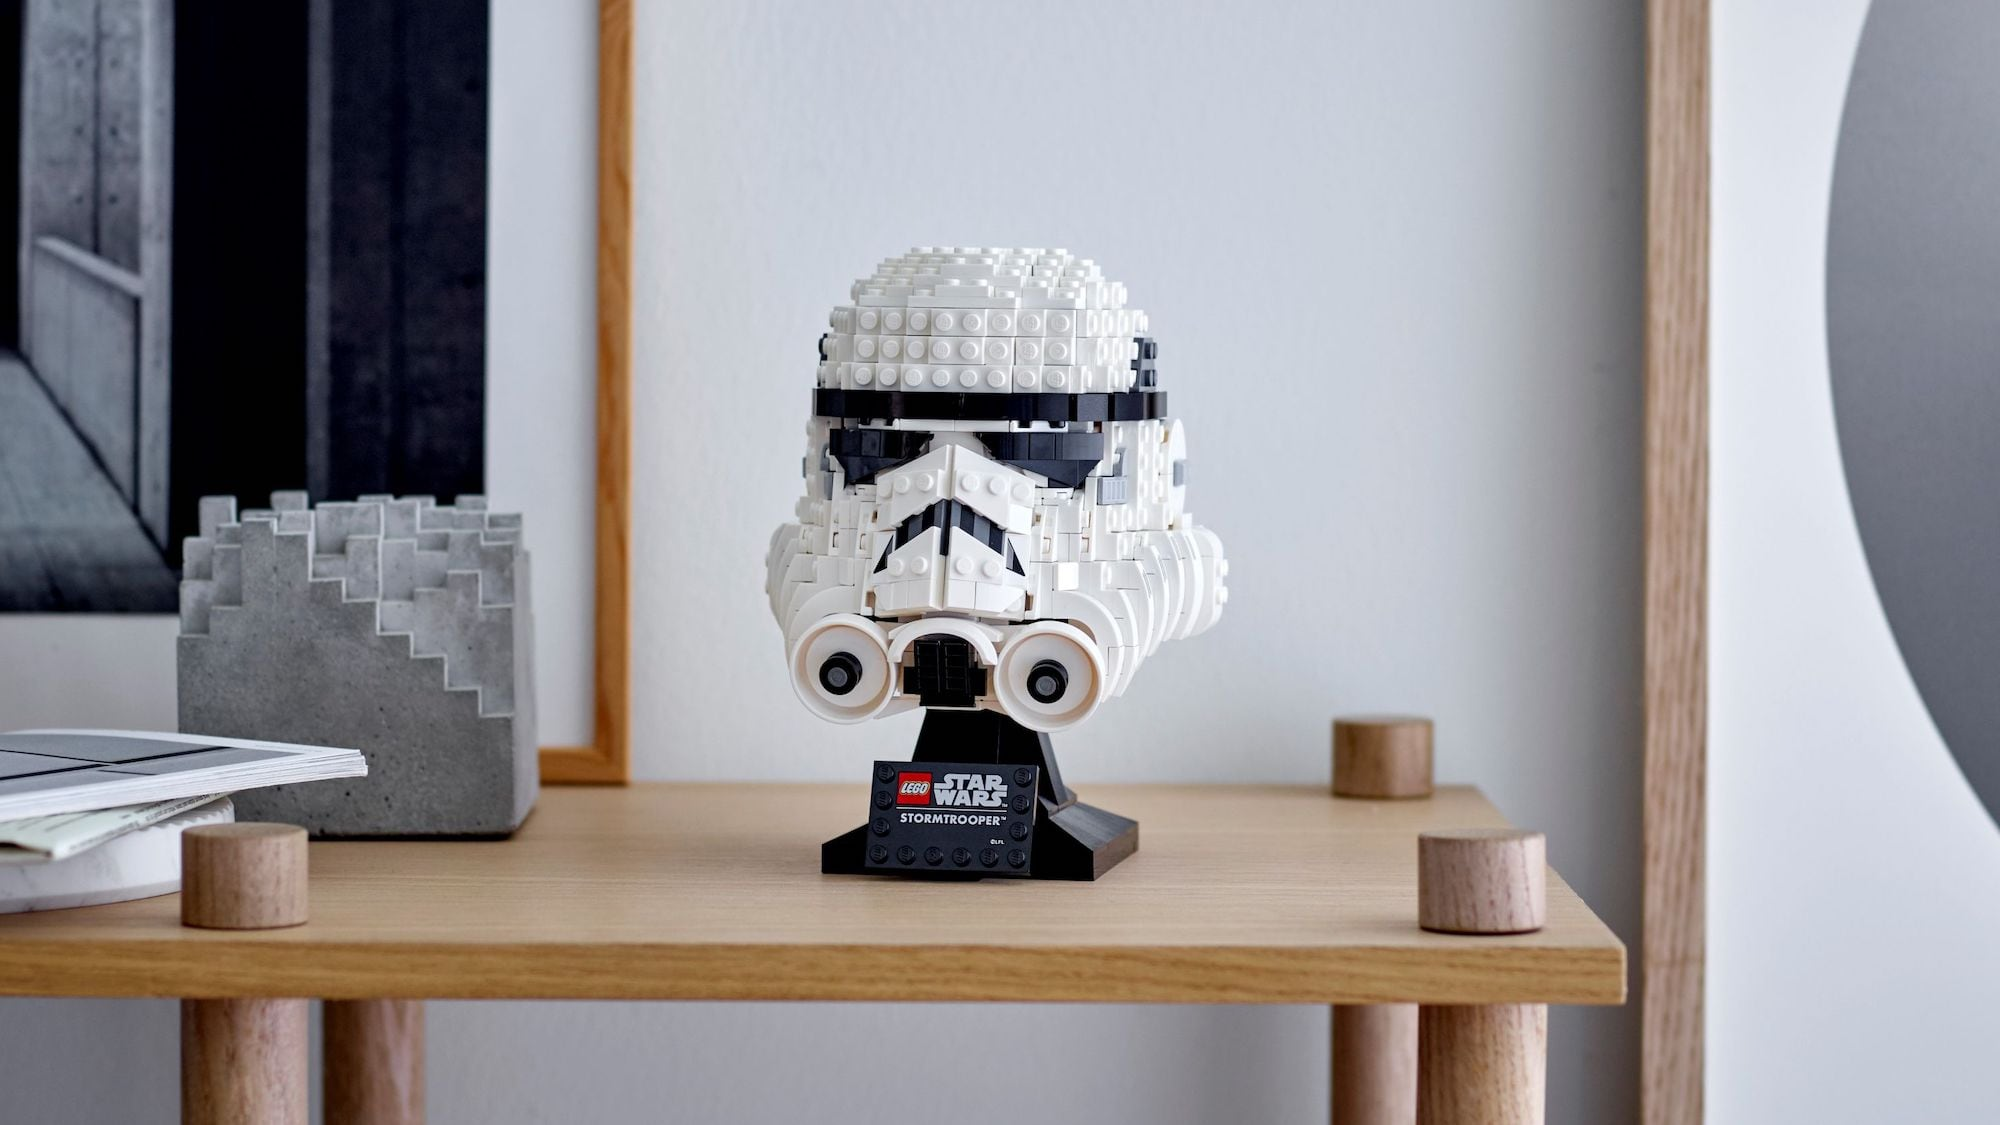 10 Star Wars gadgets you need to see